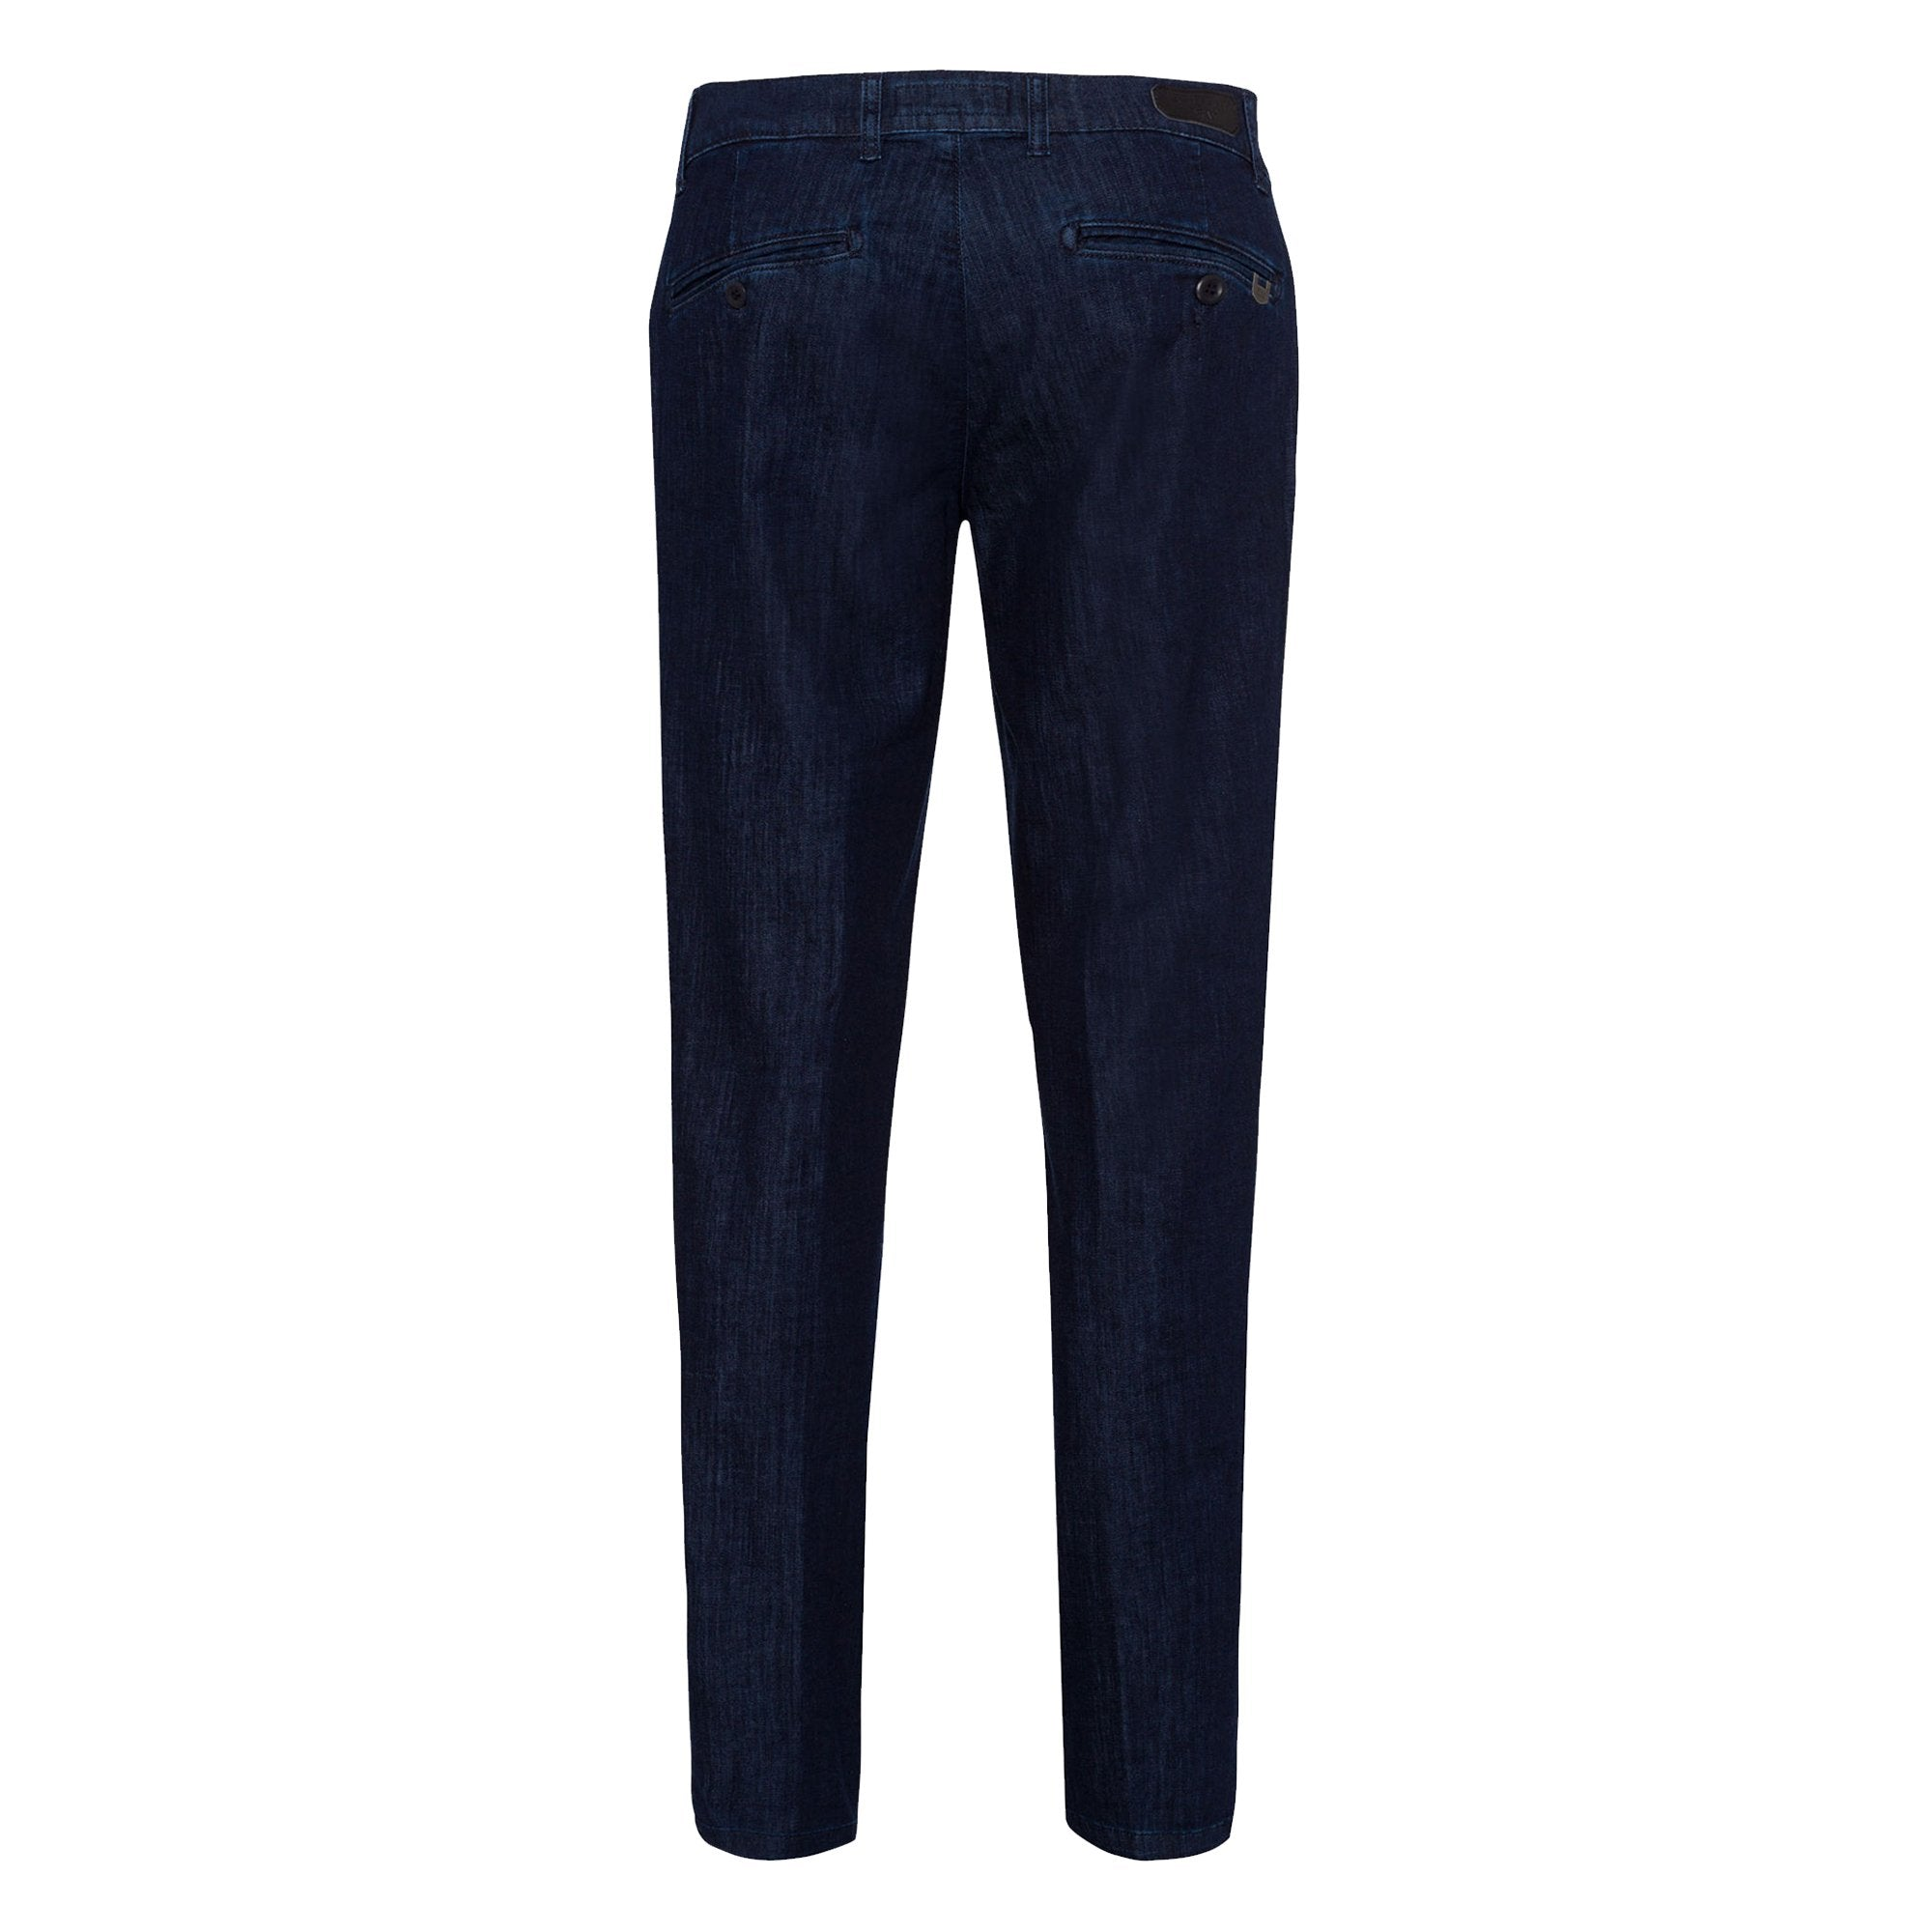 BRAX EVEREST MASTERPIECE GENTLEMAN'S JEAN